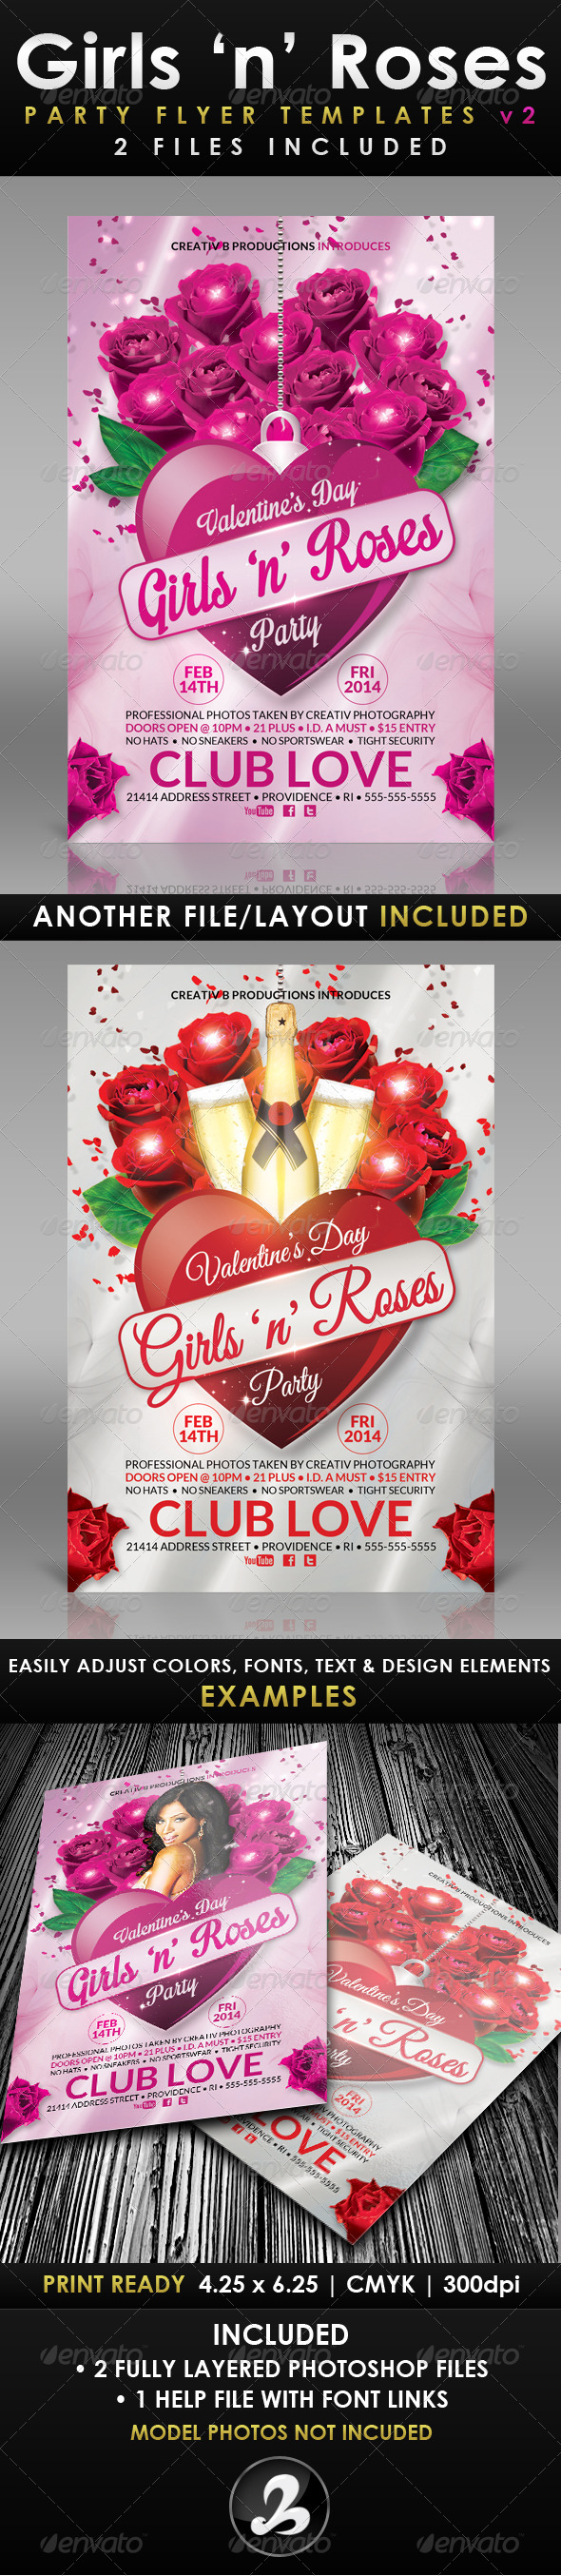 Girls 'n' Roses Valentine's Day Flyer Template 2 - Holidays Events